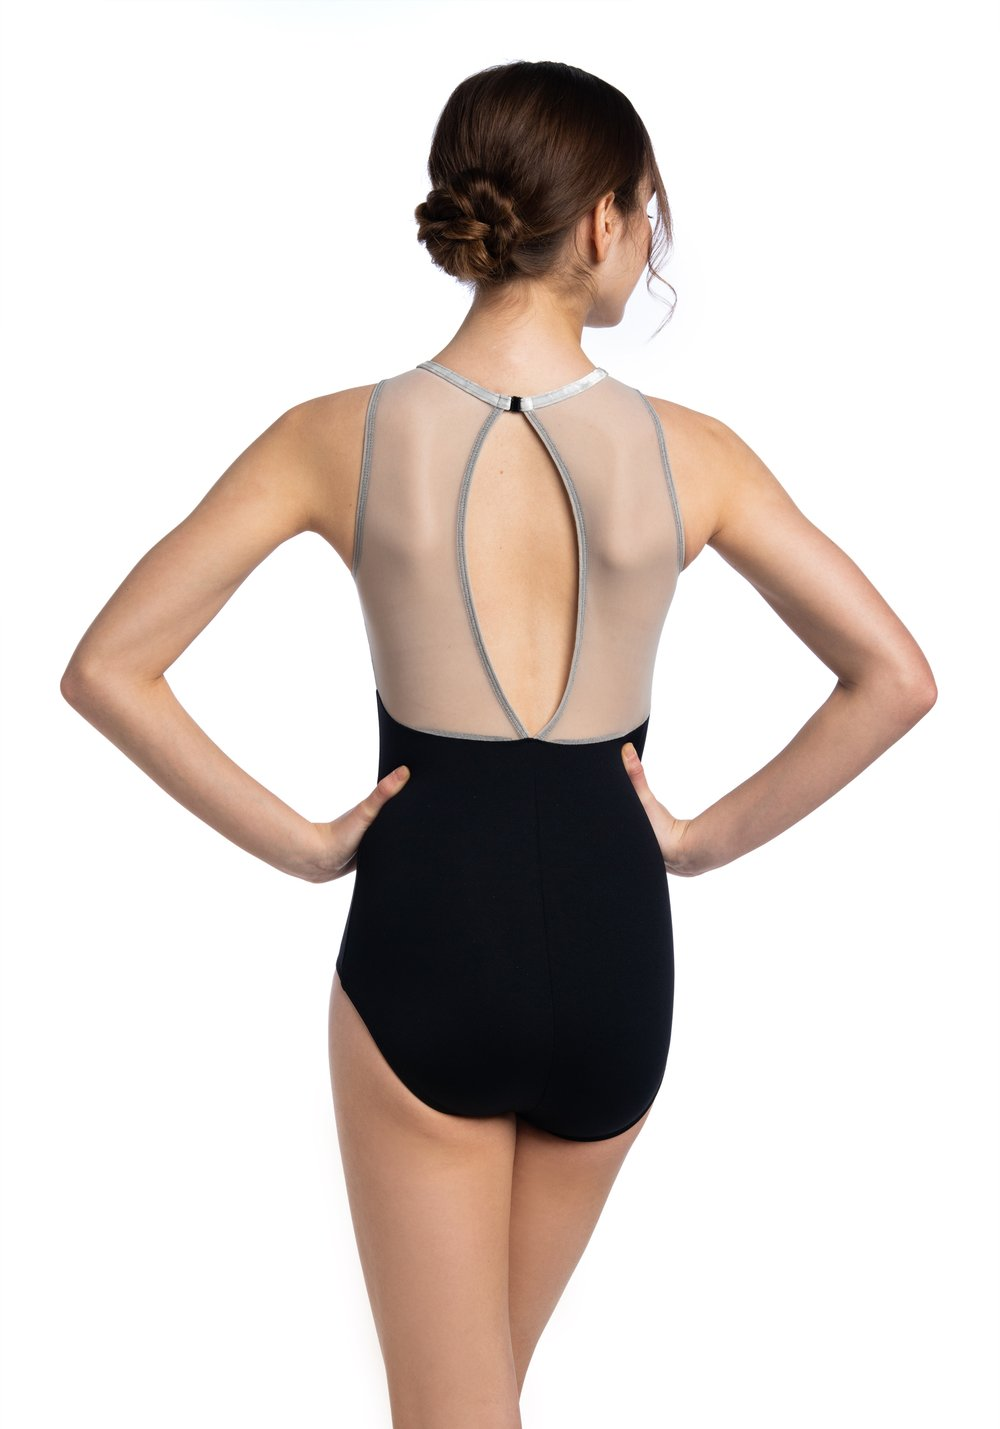 Ainsliewear Daphne Leotard with Crushed Velvet - 1054CV